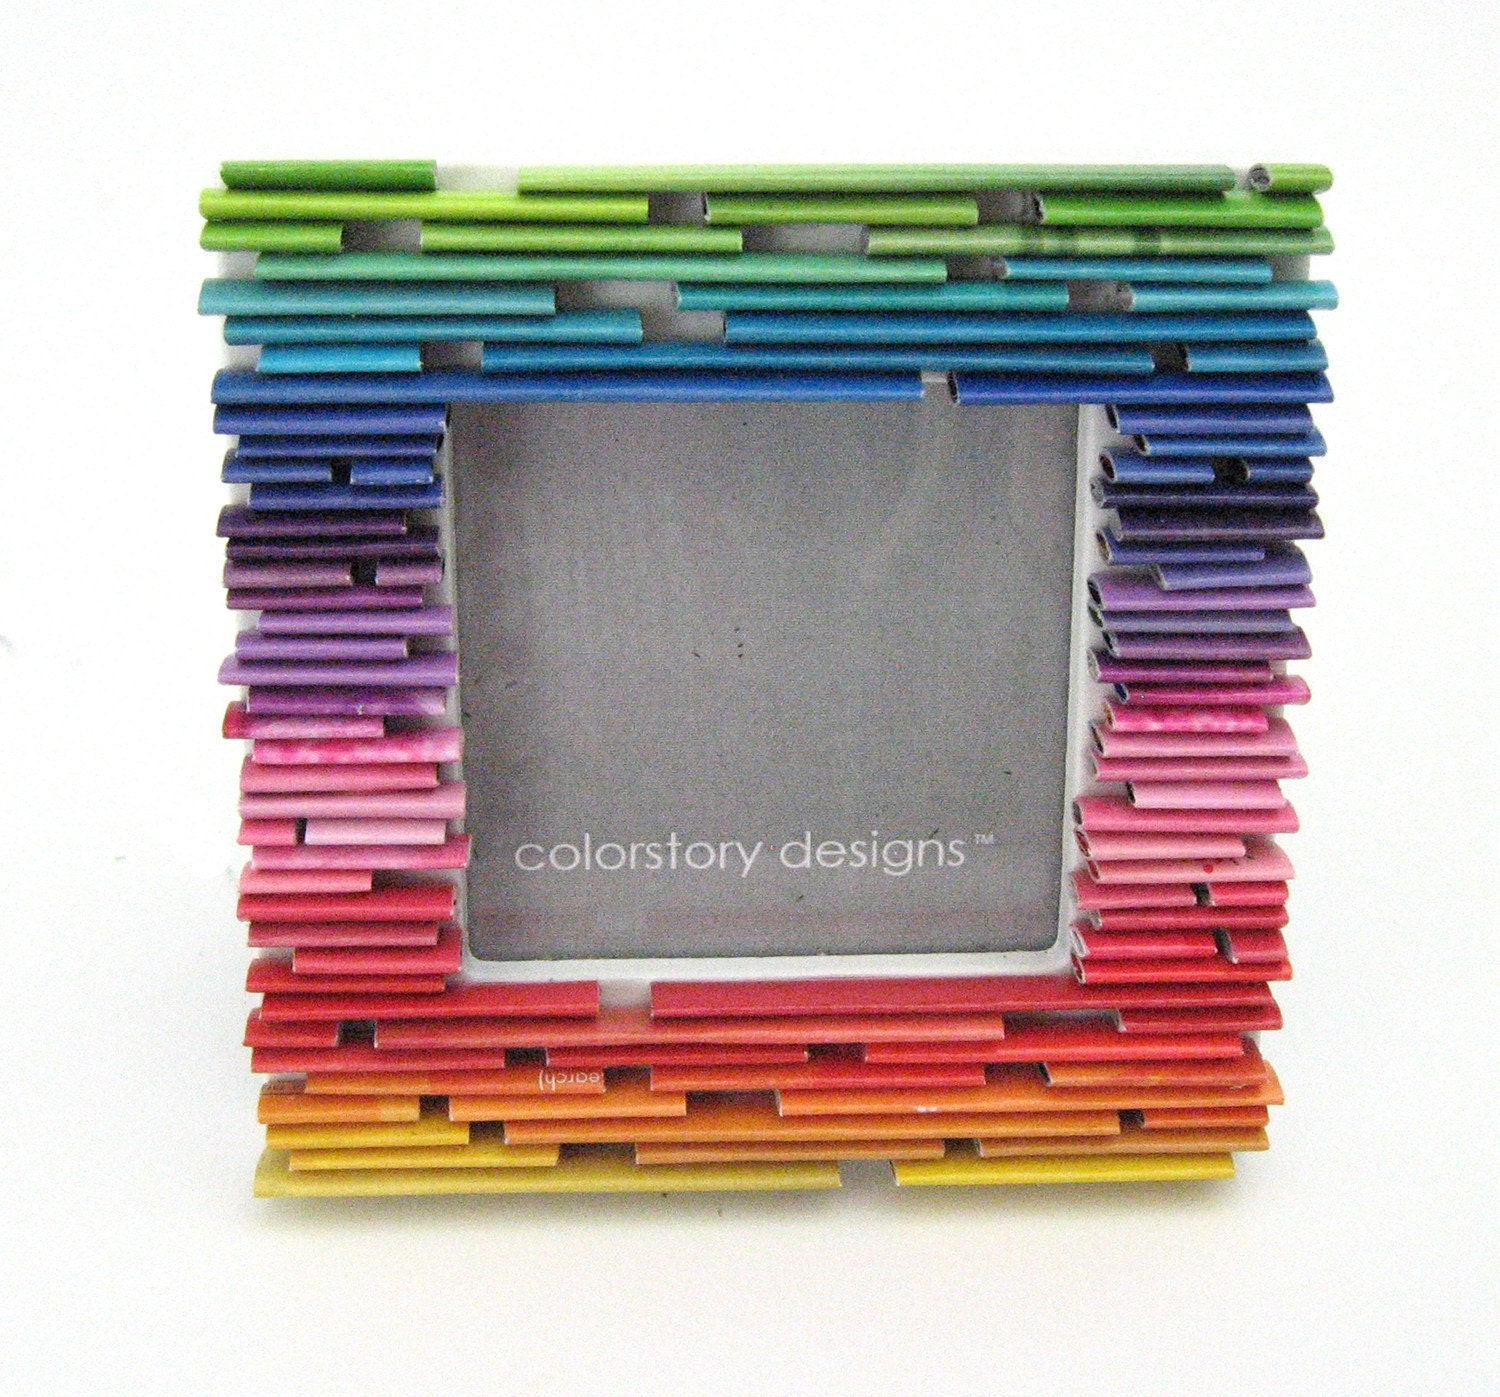 Eco friendly art gallery magazine colorstory designs recycled this gradiant picture frame is made from recycled magazines a steal at 32 jeuxipadfo Image collections